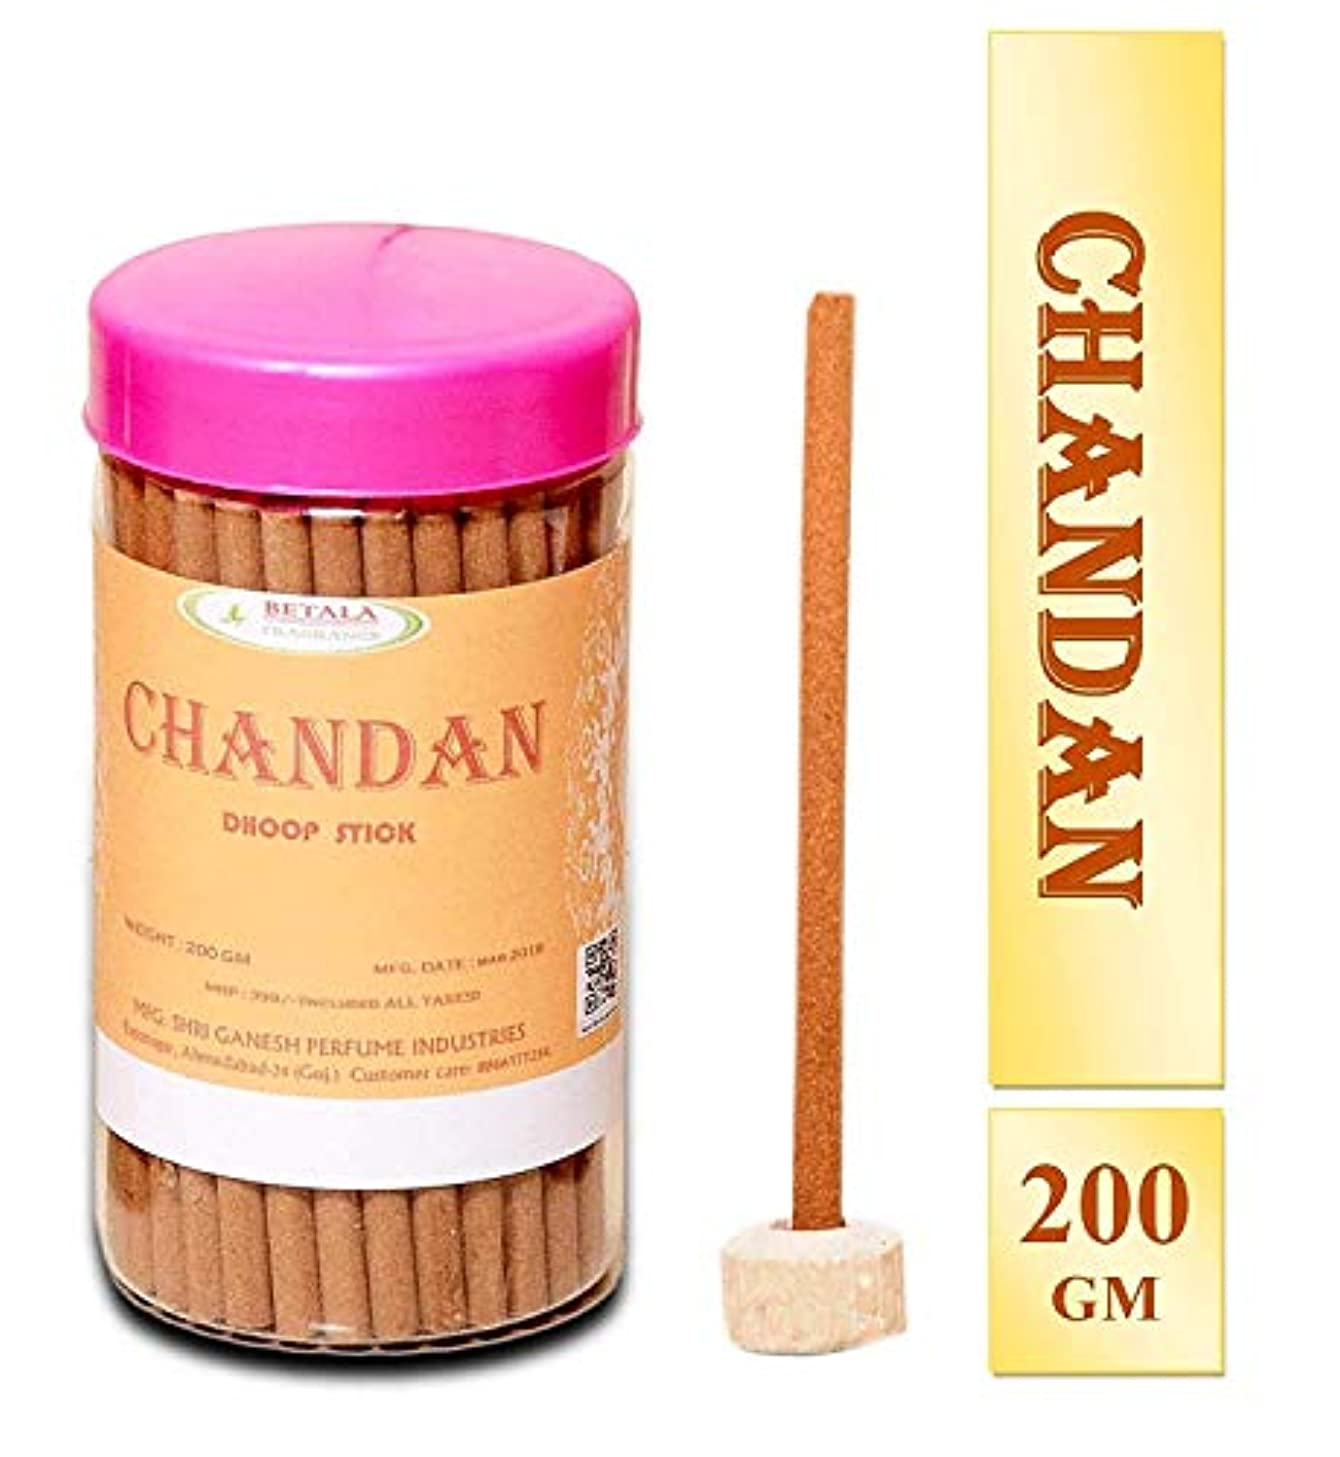 巨大な召集するプロジェクターBETALA FRAGRANCE Sandal/Chandan Dhoop Sticks Pack (200 g)